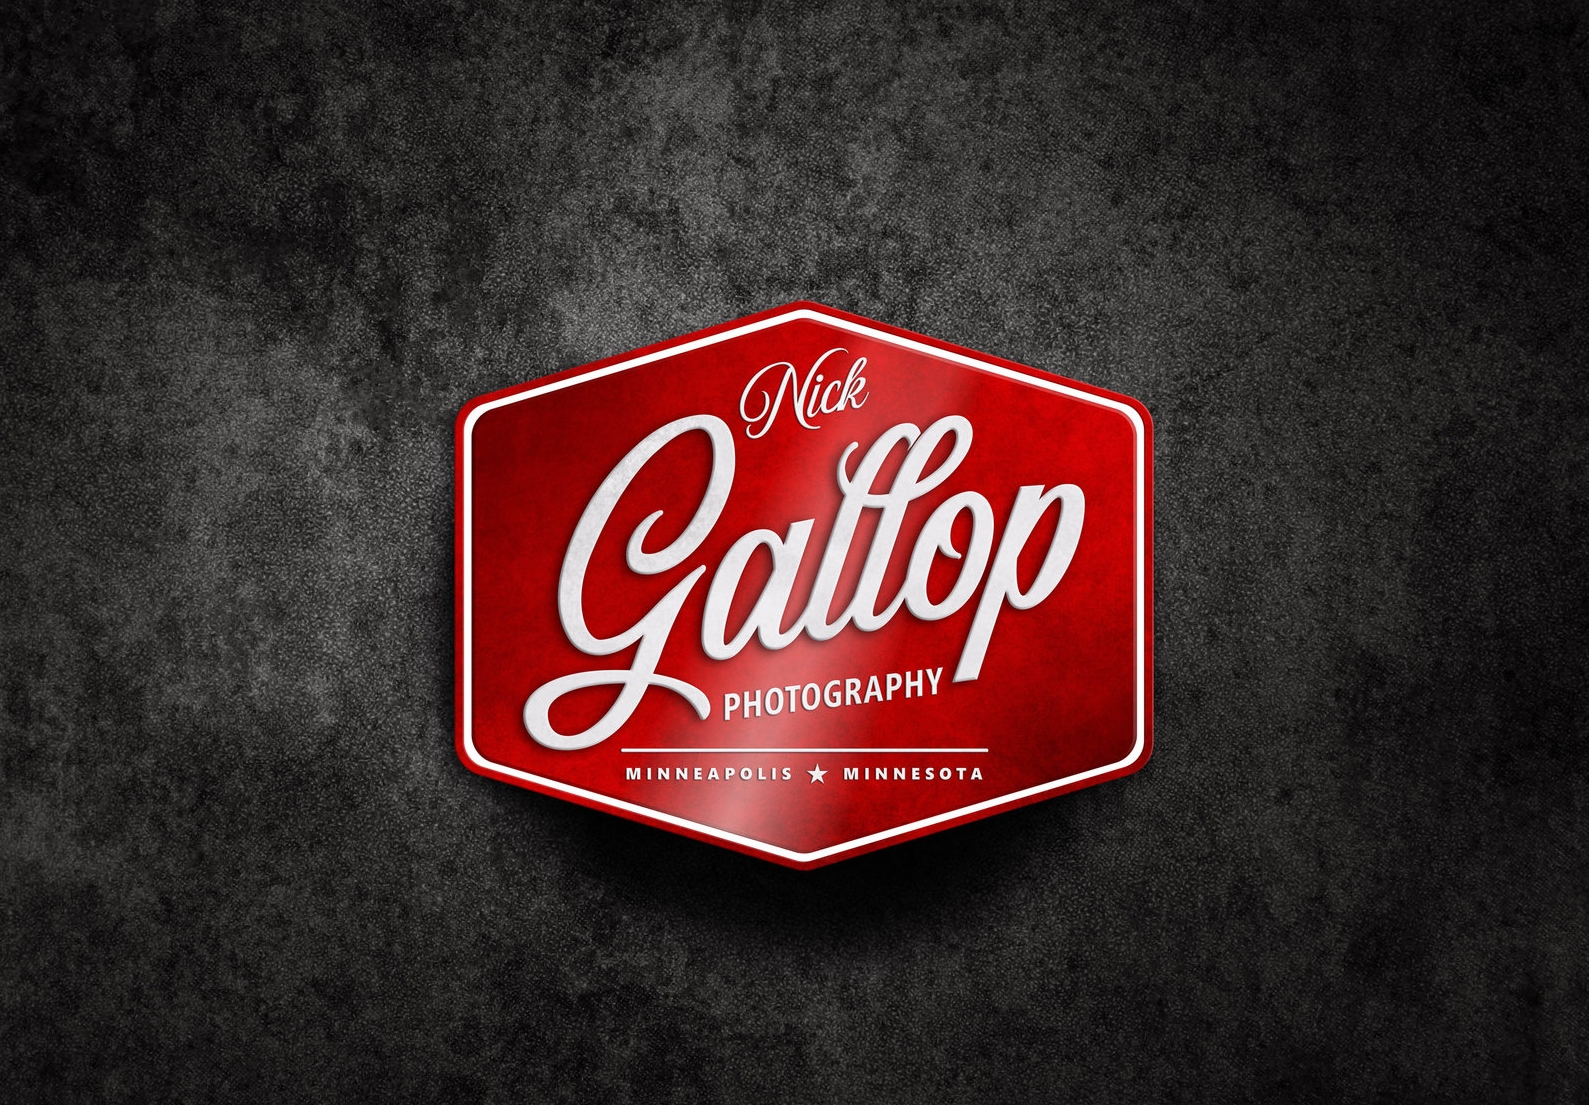 Logo brand design for Nick Gallop Photography in Minneapolis, Minnesota